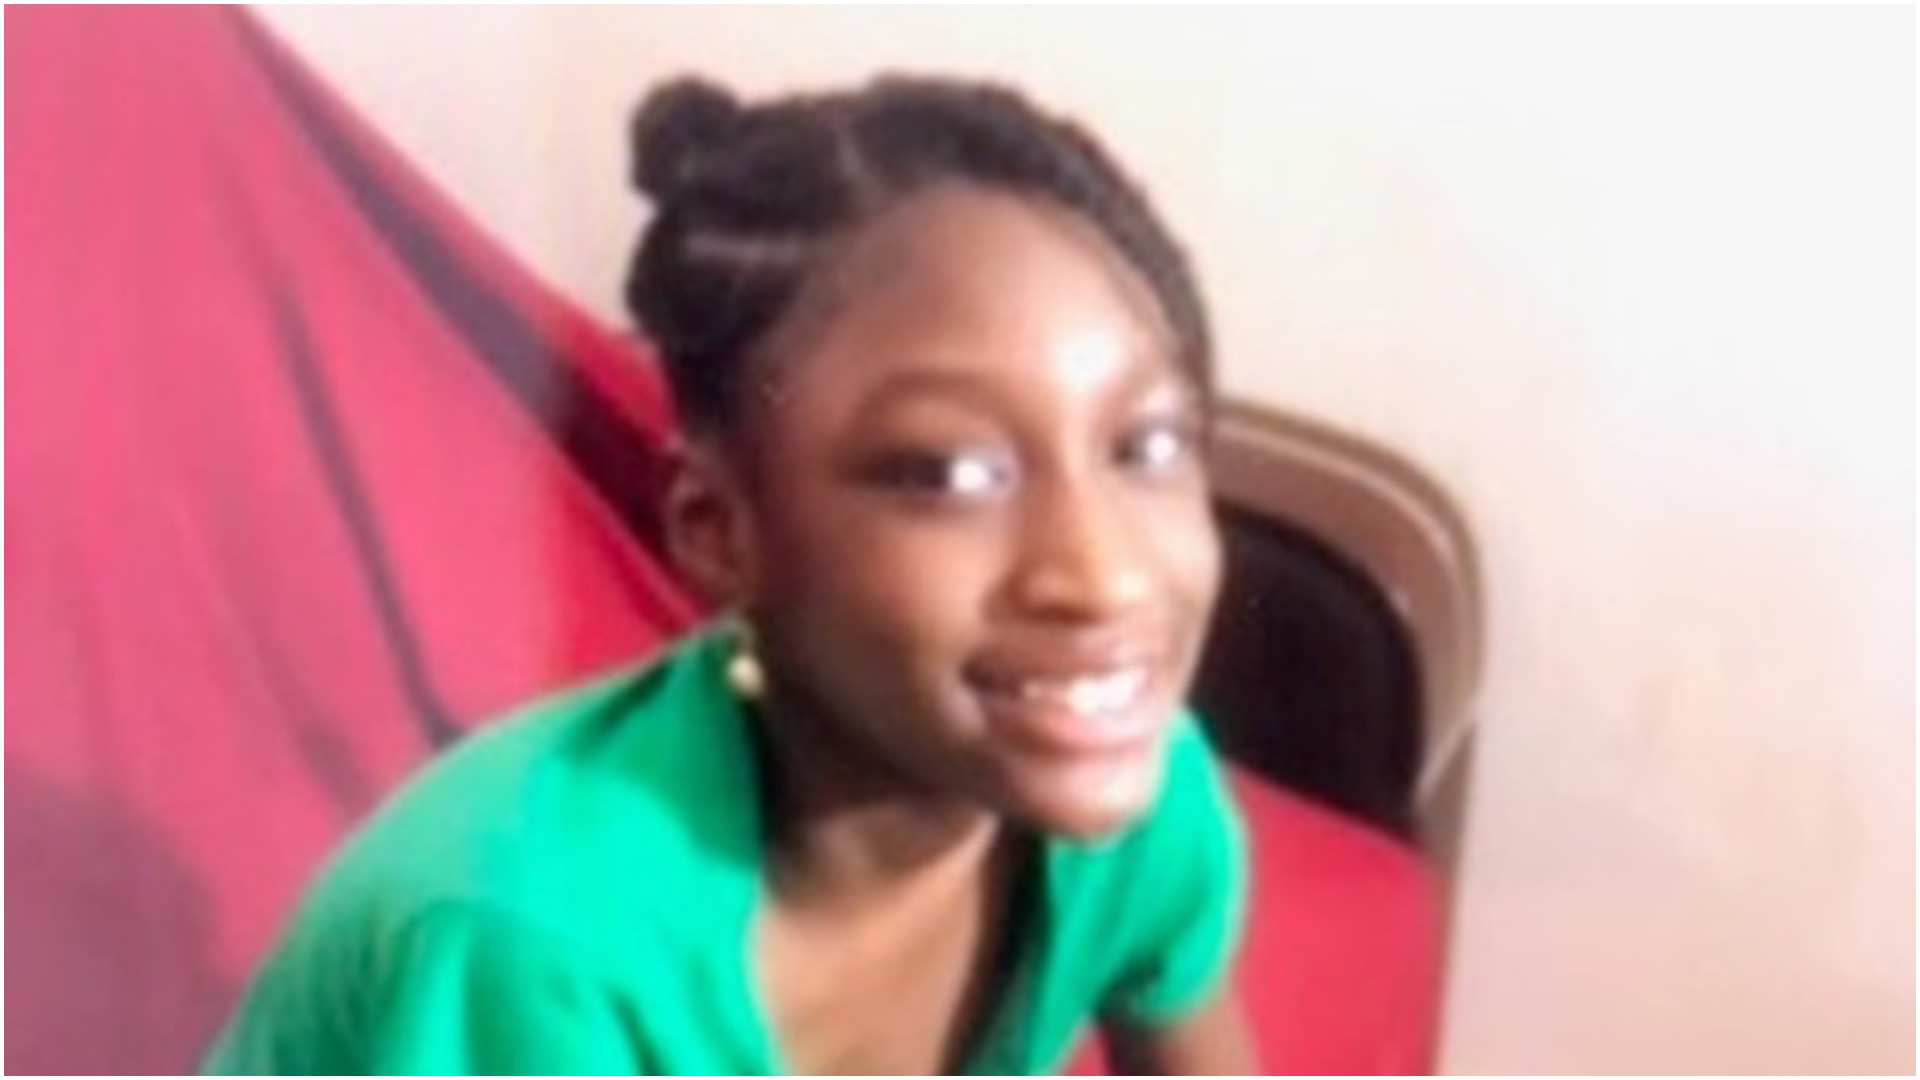 Police searching for missing 11-year-old Cambria Heights girl